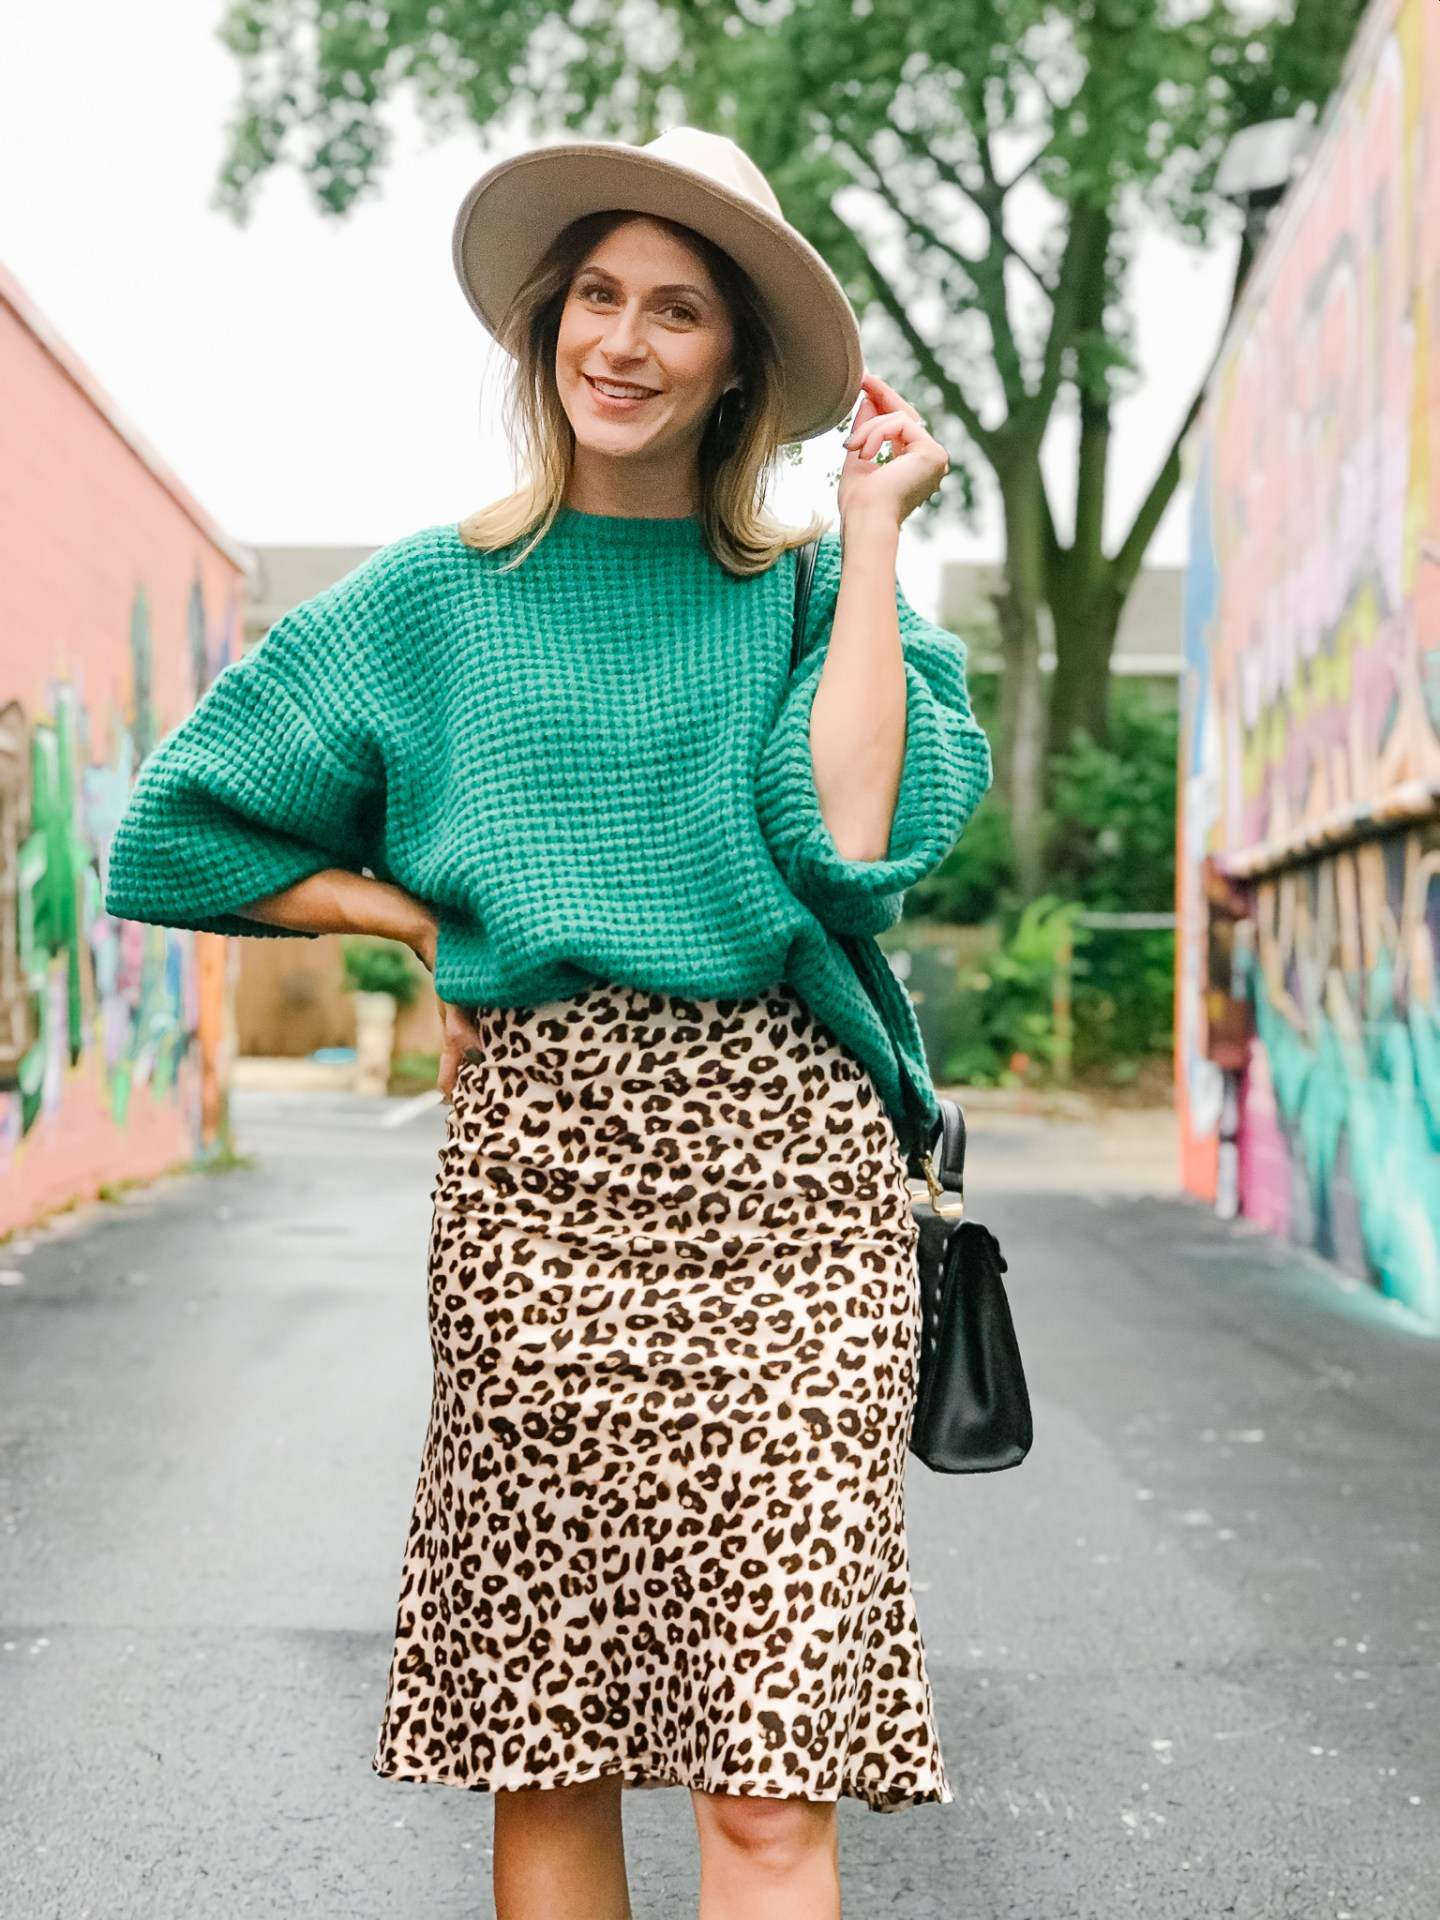 Transition a skirt for Fall